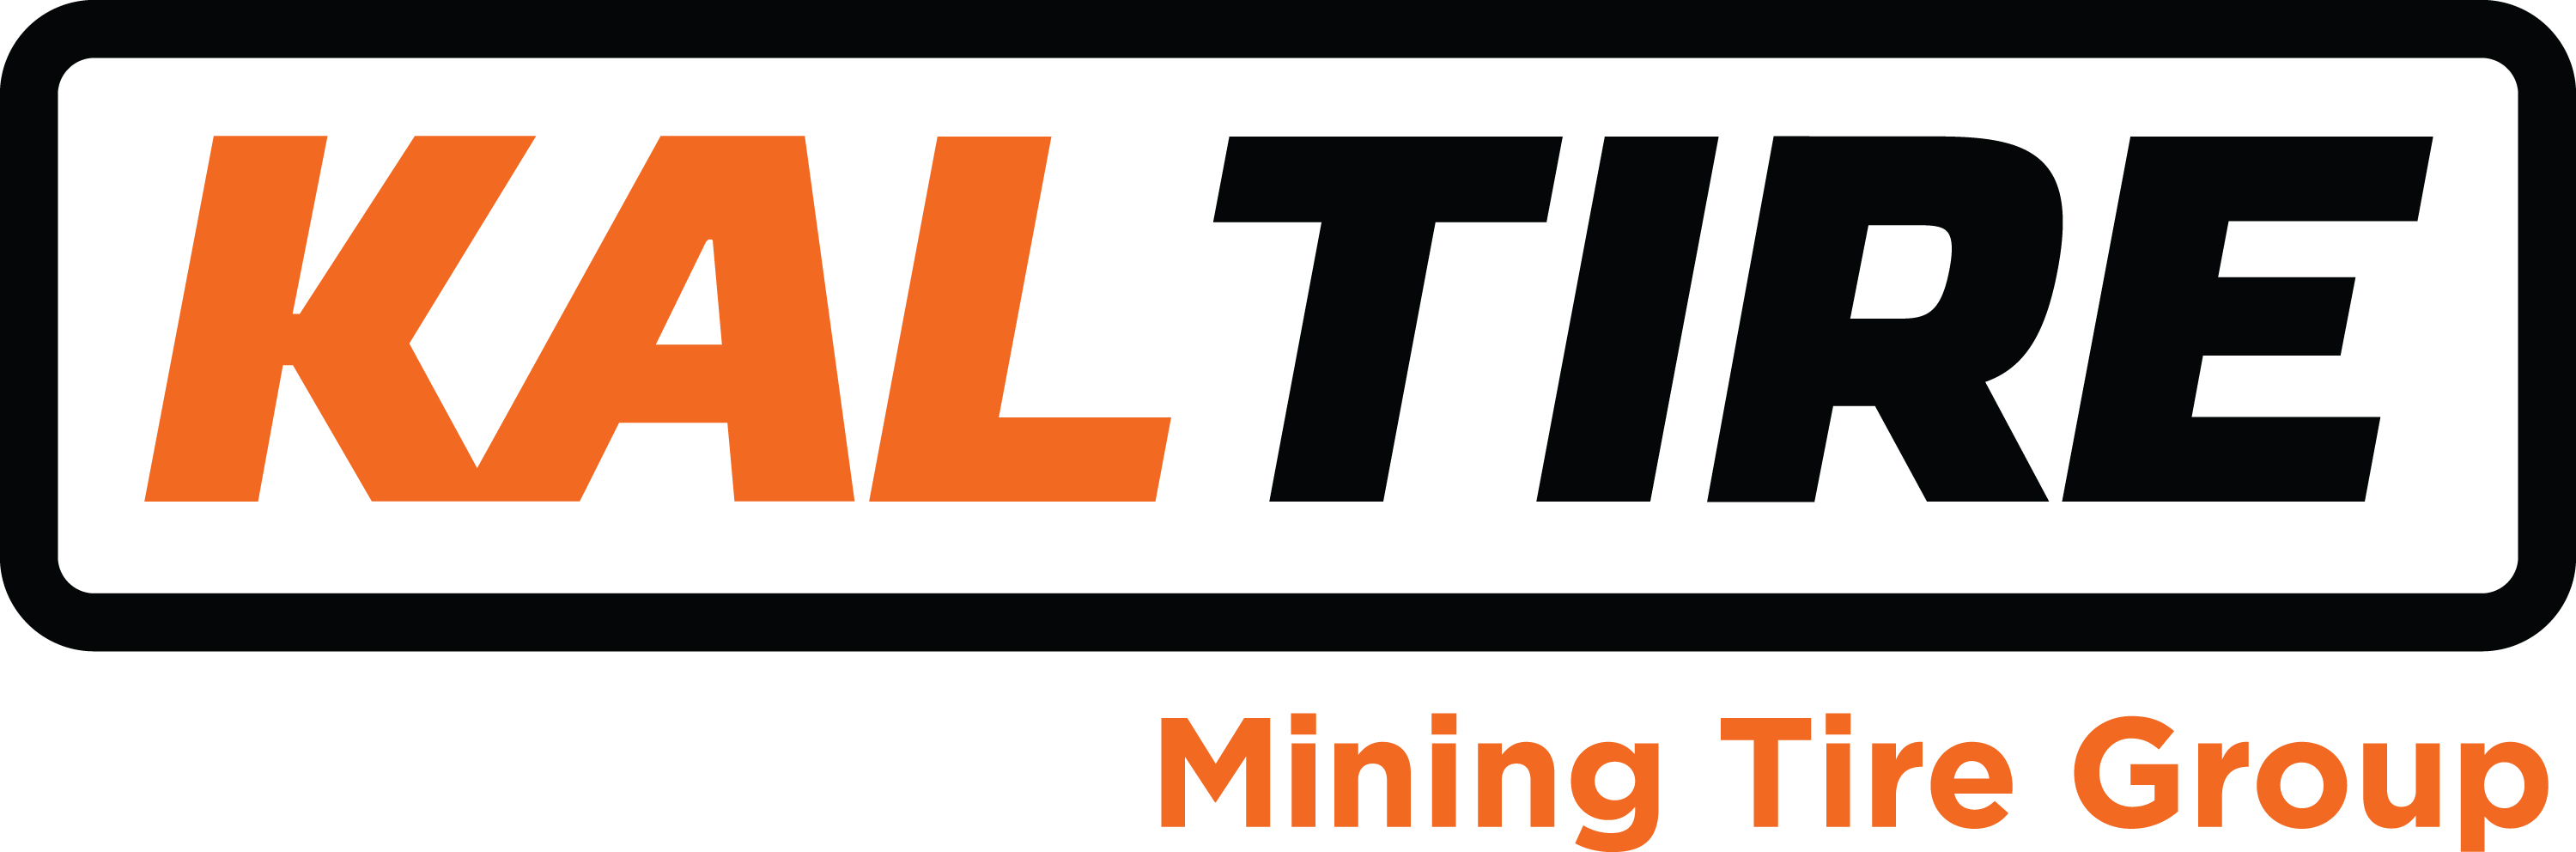 Supply Chain Network - Kal Tire Mining Tyre Services SA Pty Ltd